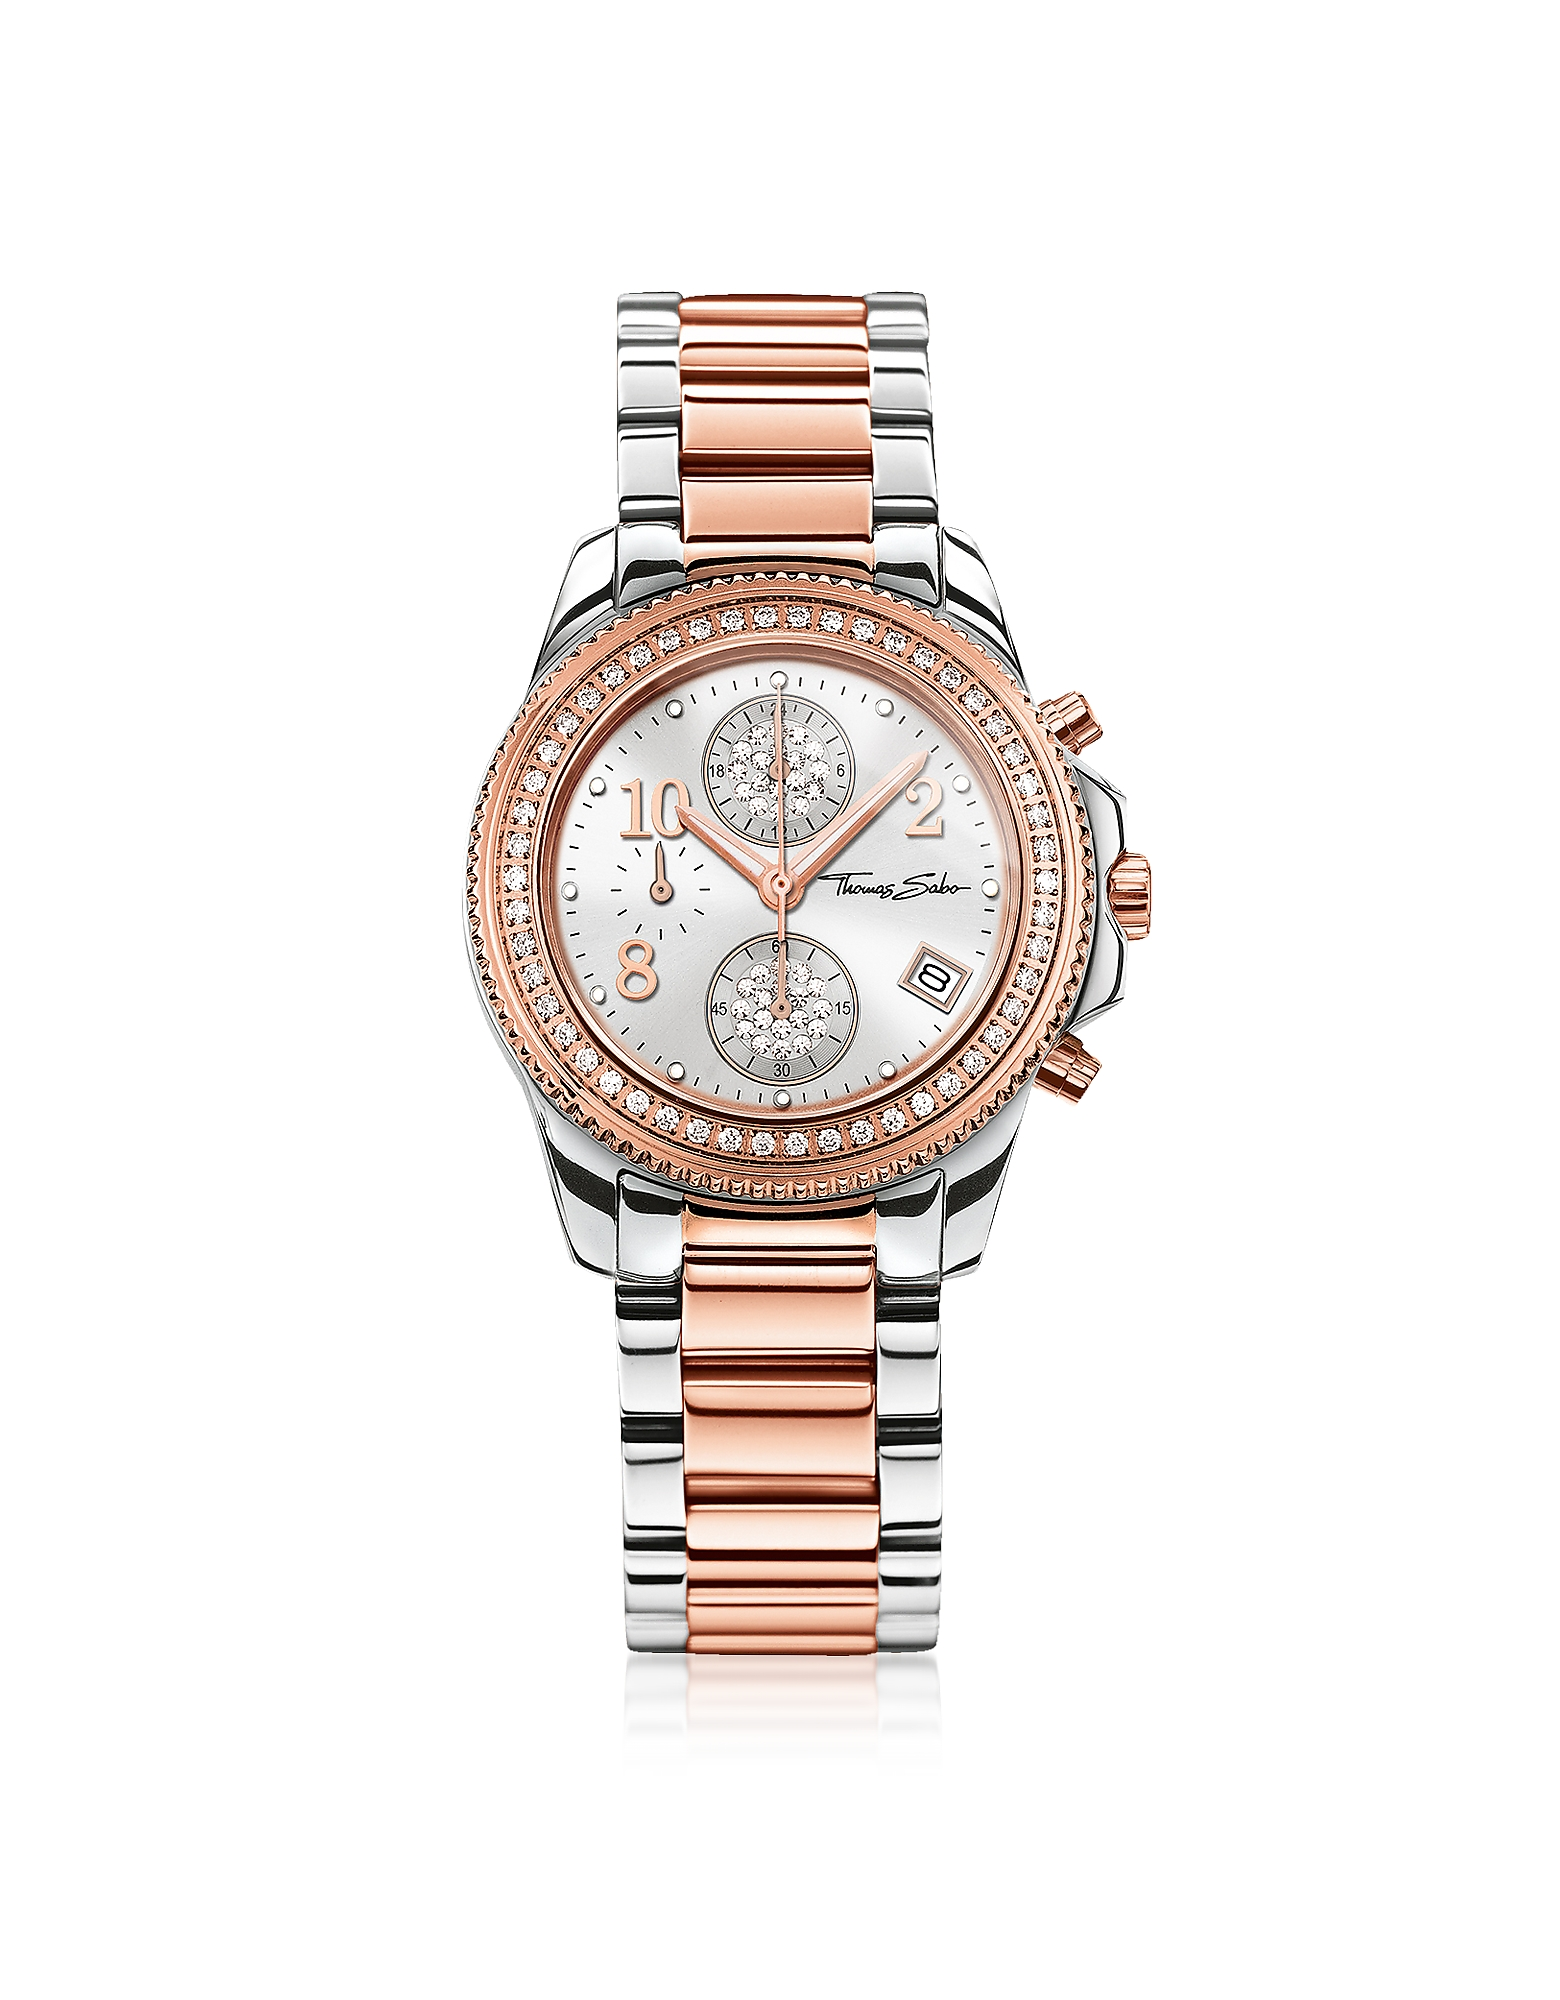 Glam Chrono Silver and Rose Gold Stainless Steel Women's Watch w/Crystals